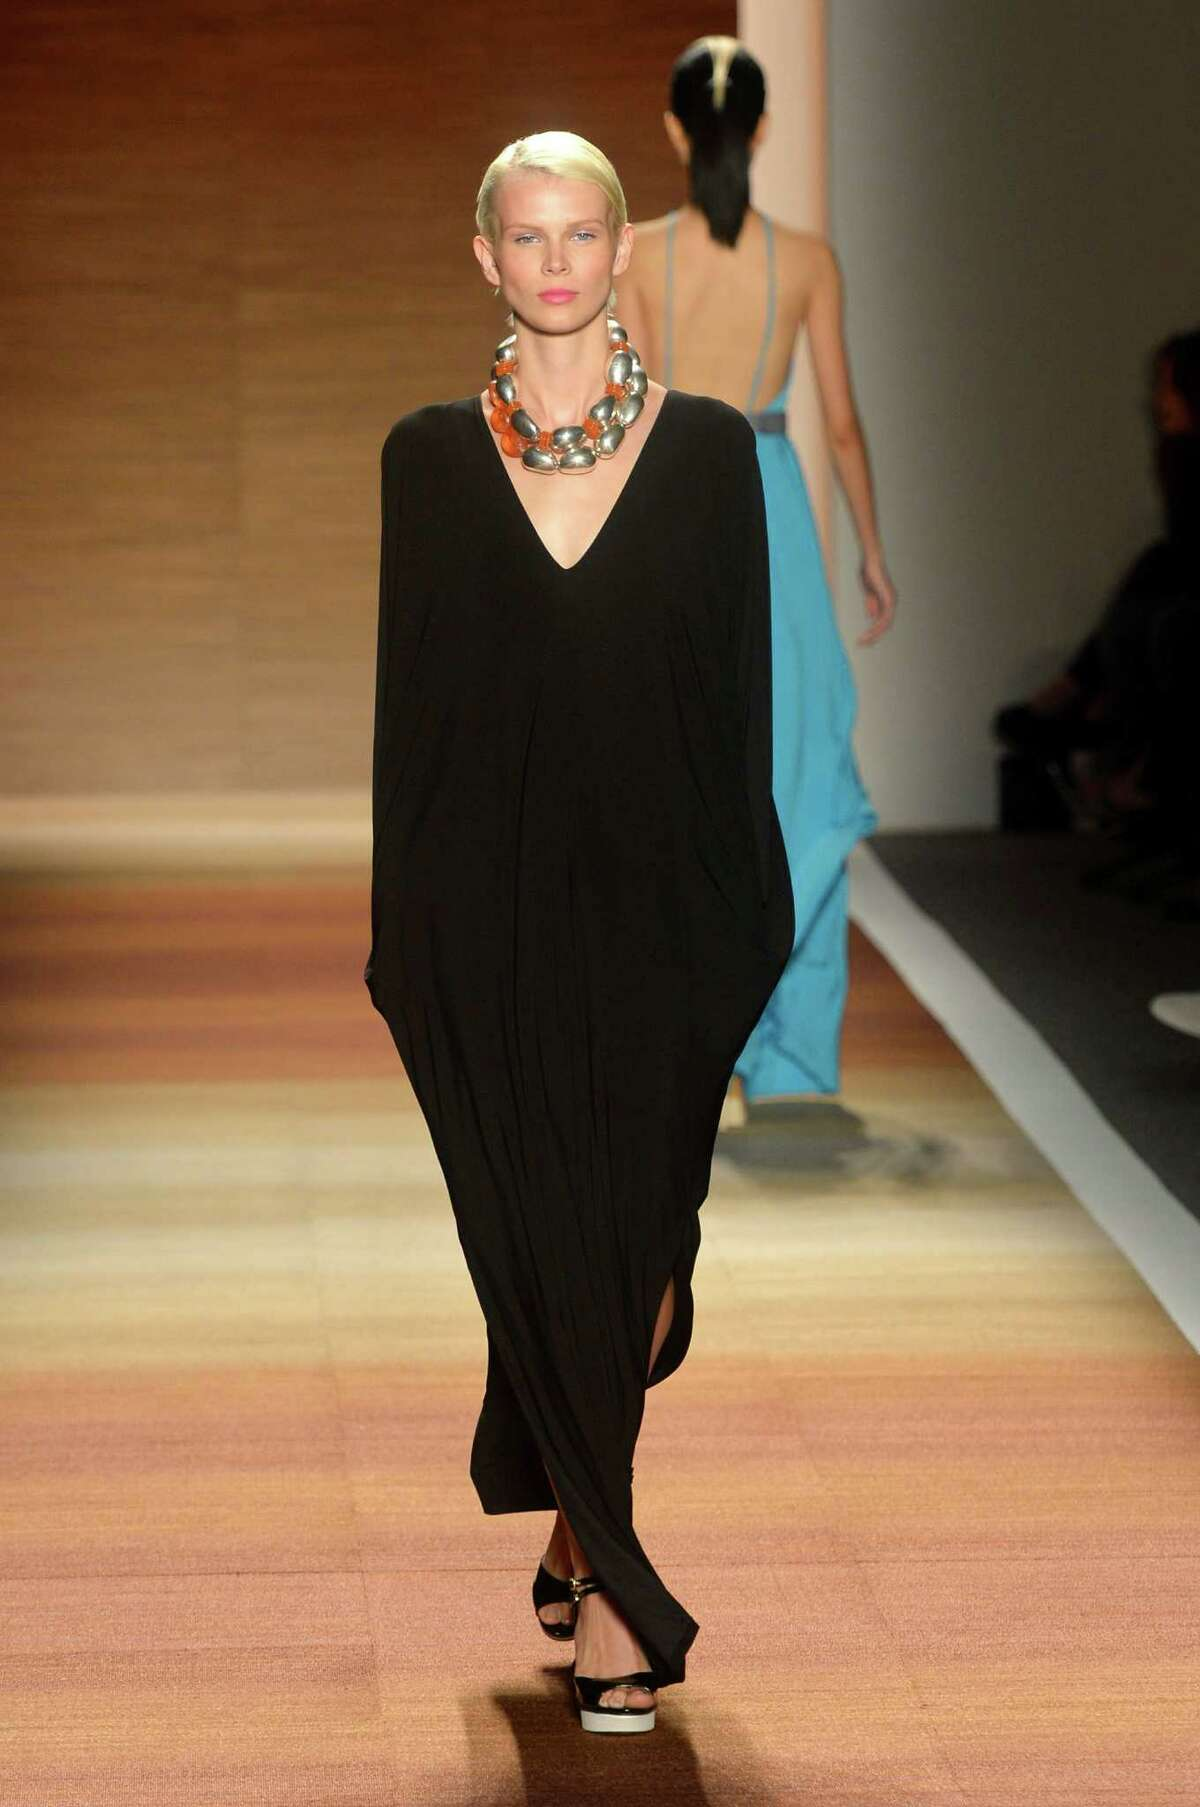 Galindo's spring collection included dresses in black, bright hues and prints.